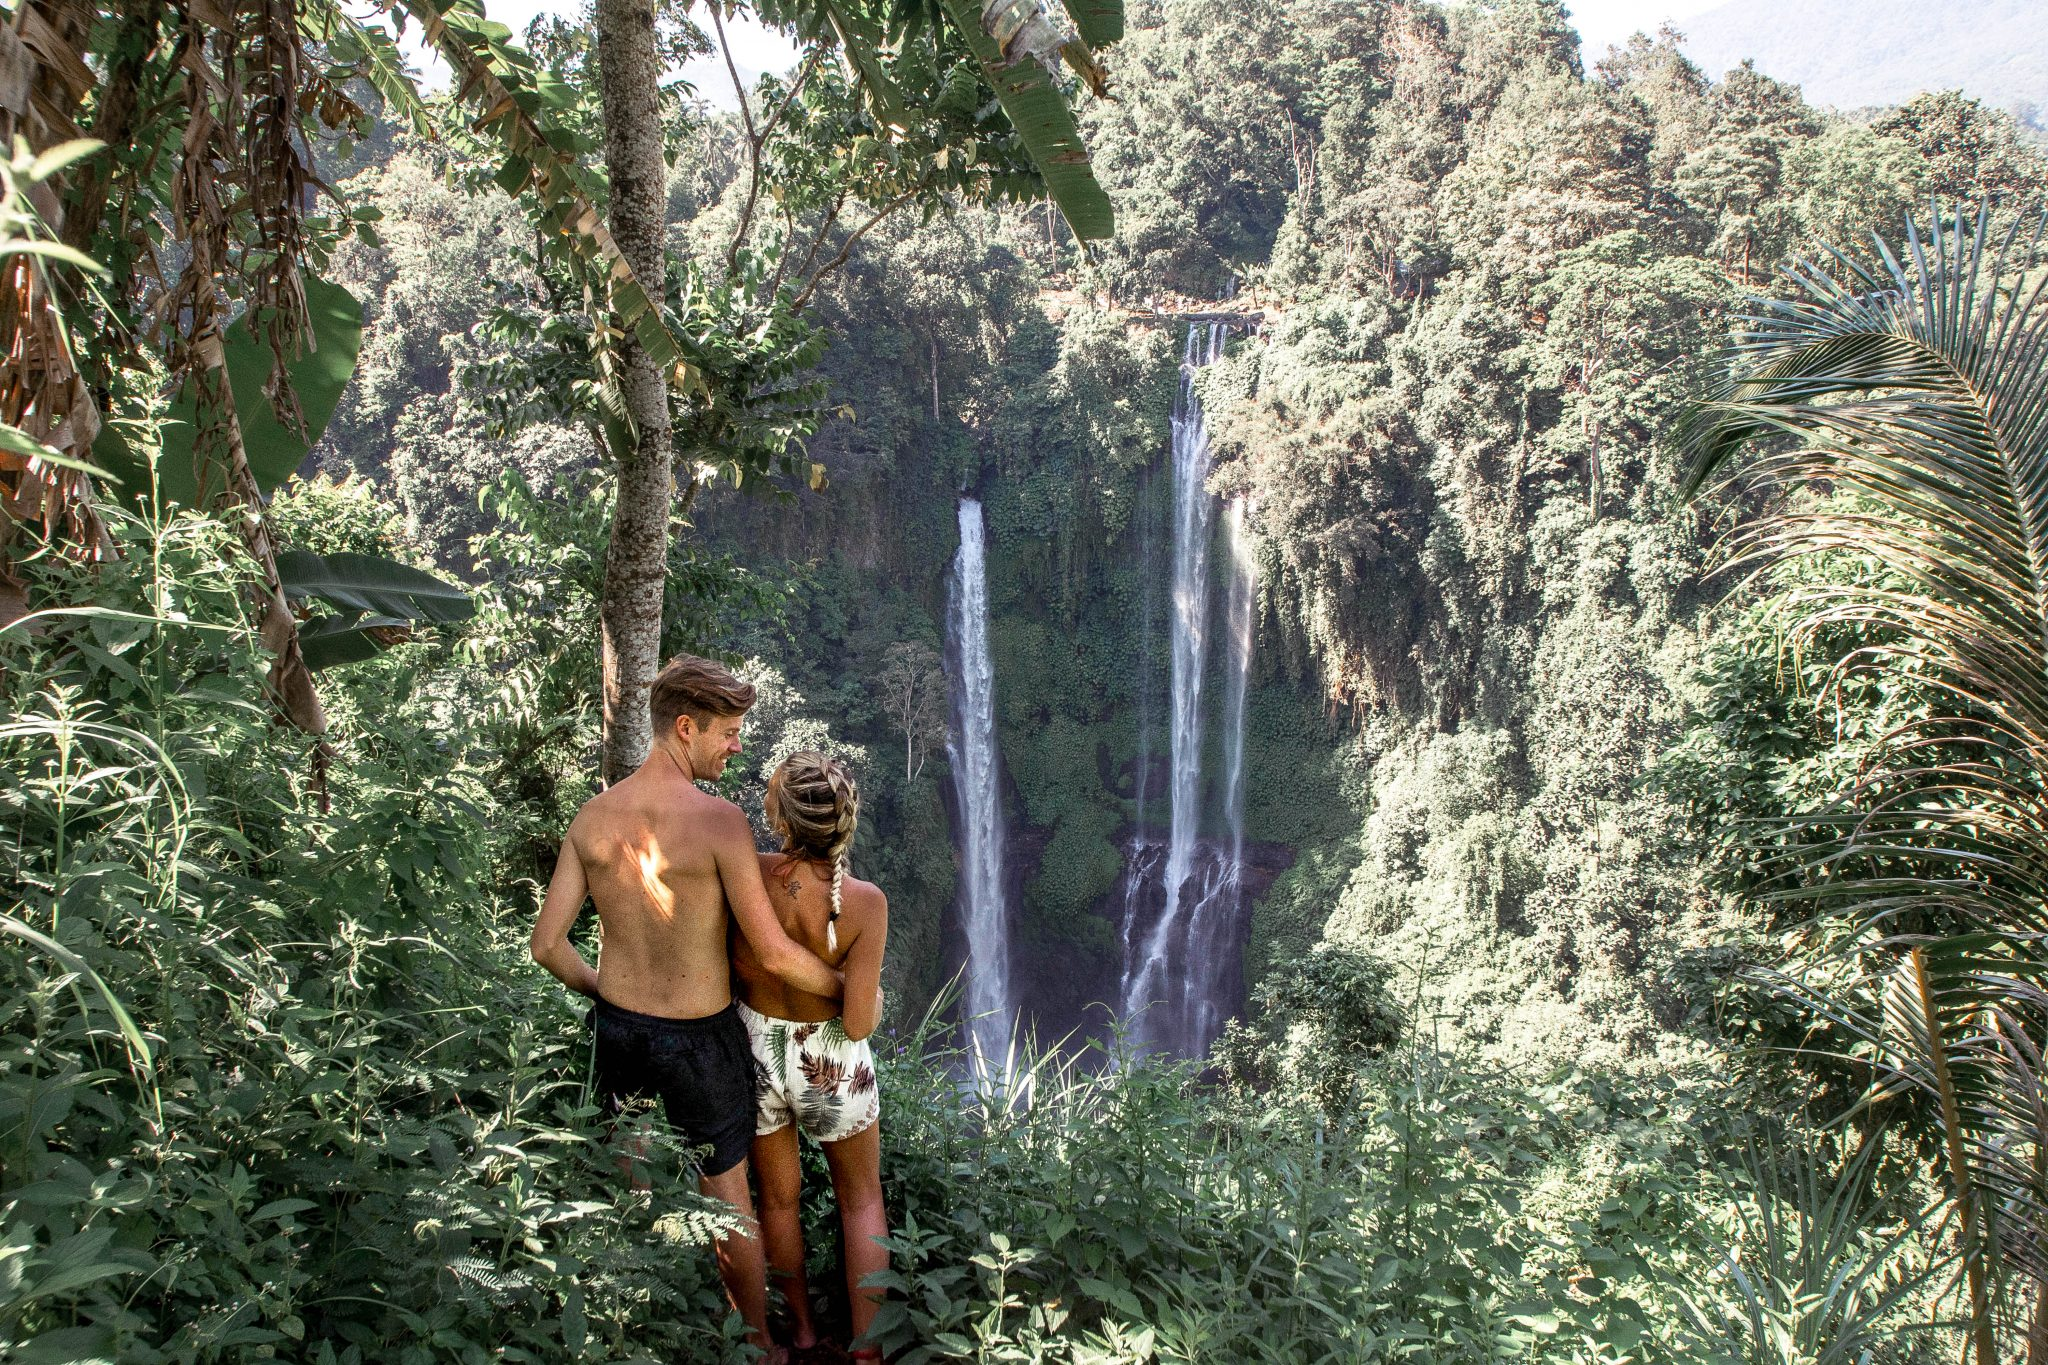 Wanderers & Warriors - Charlie & Lauren UK Travel Couple - Sekumpul Waterfall Bali - Air Terjun Sekumpul - best waterfalls in bali - bali waterfalls